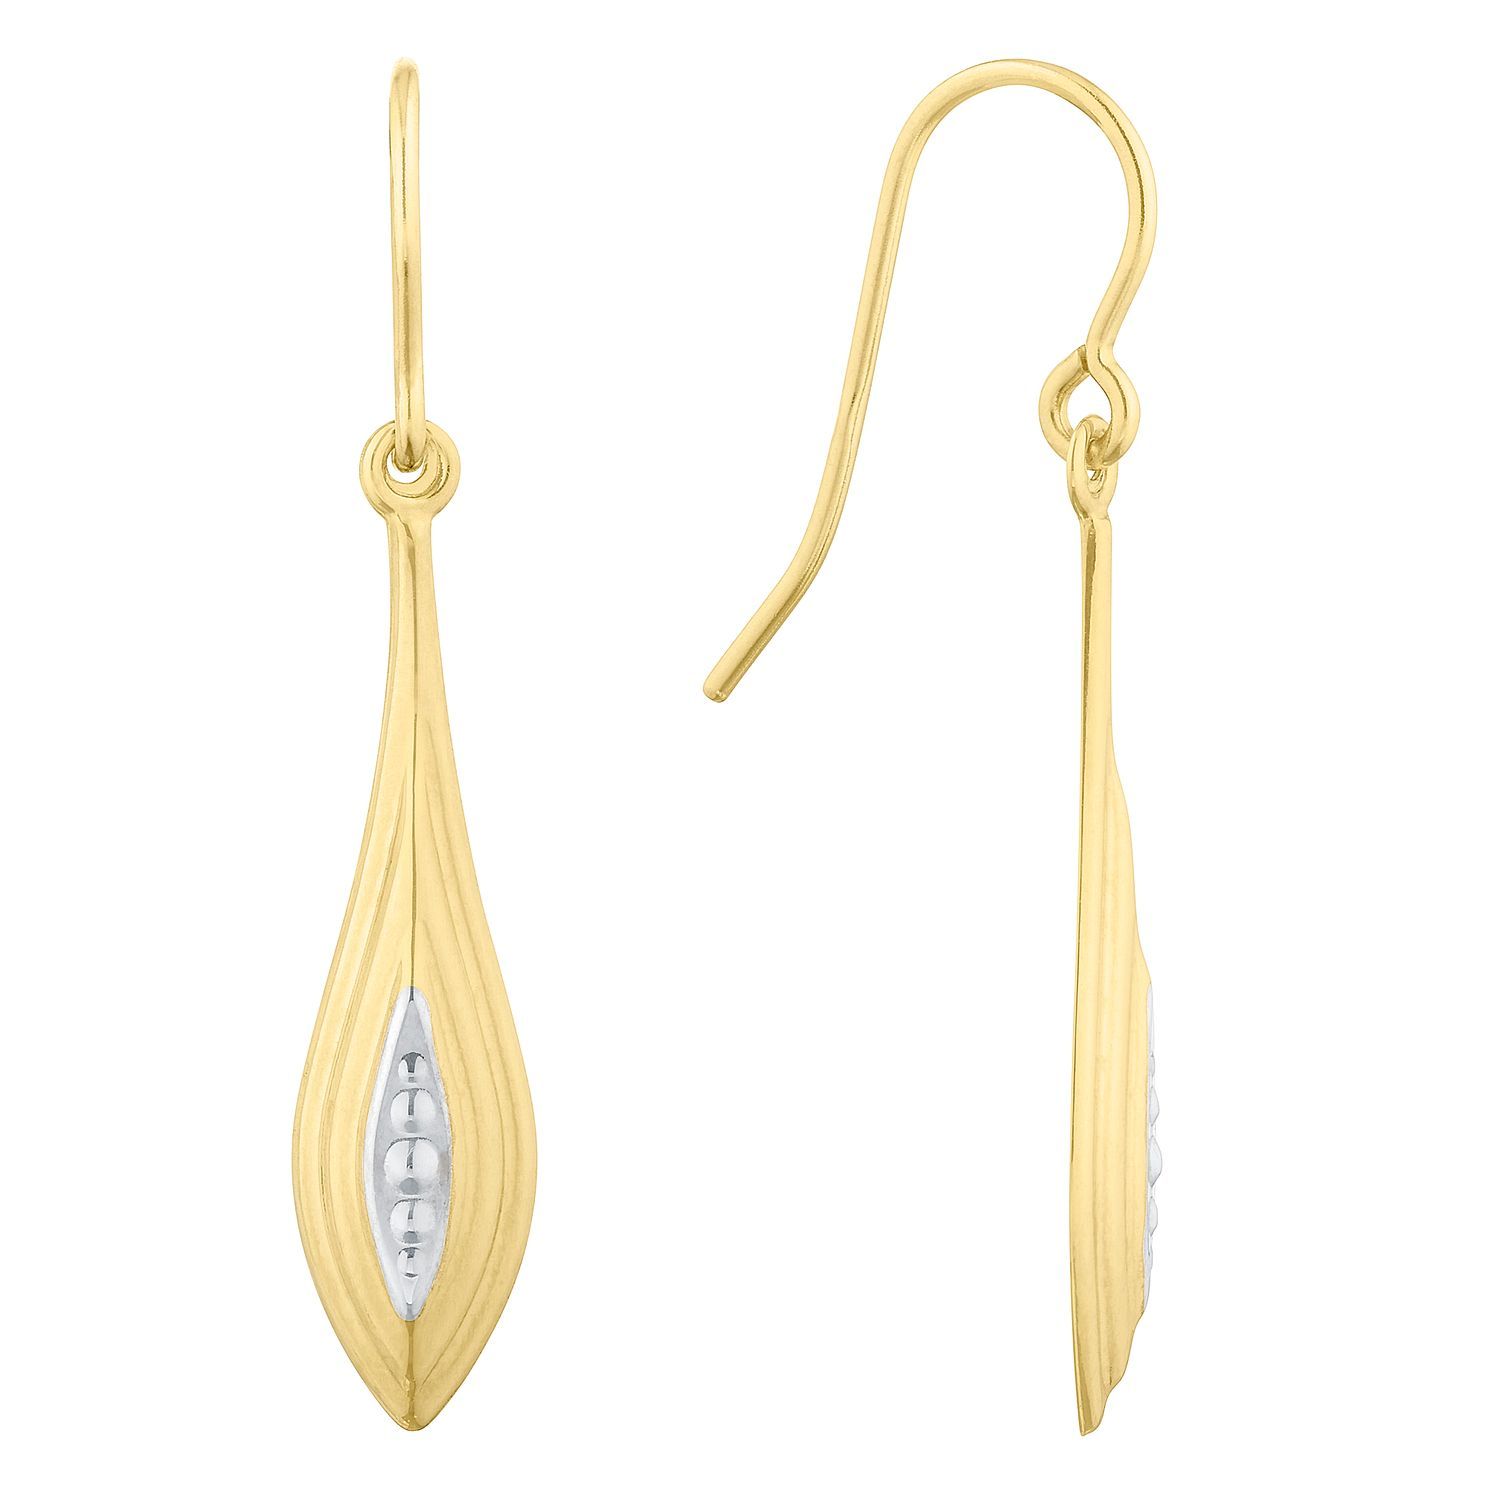 9ct Yellow Gold Two Tone Teardrop Drop Earrings - Product number 9735755